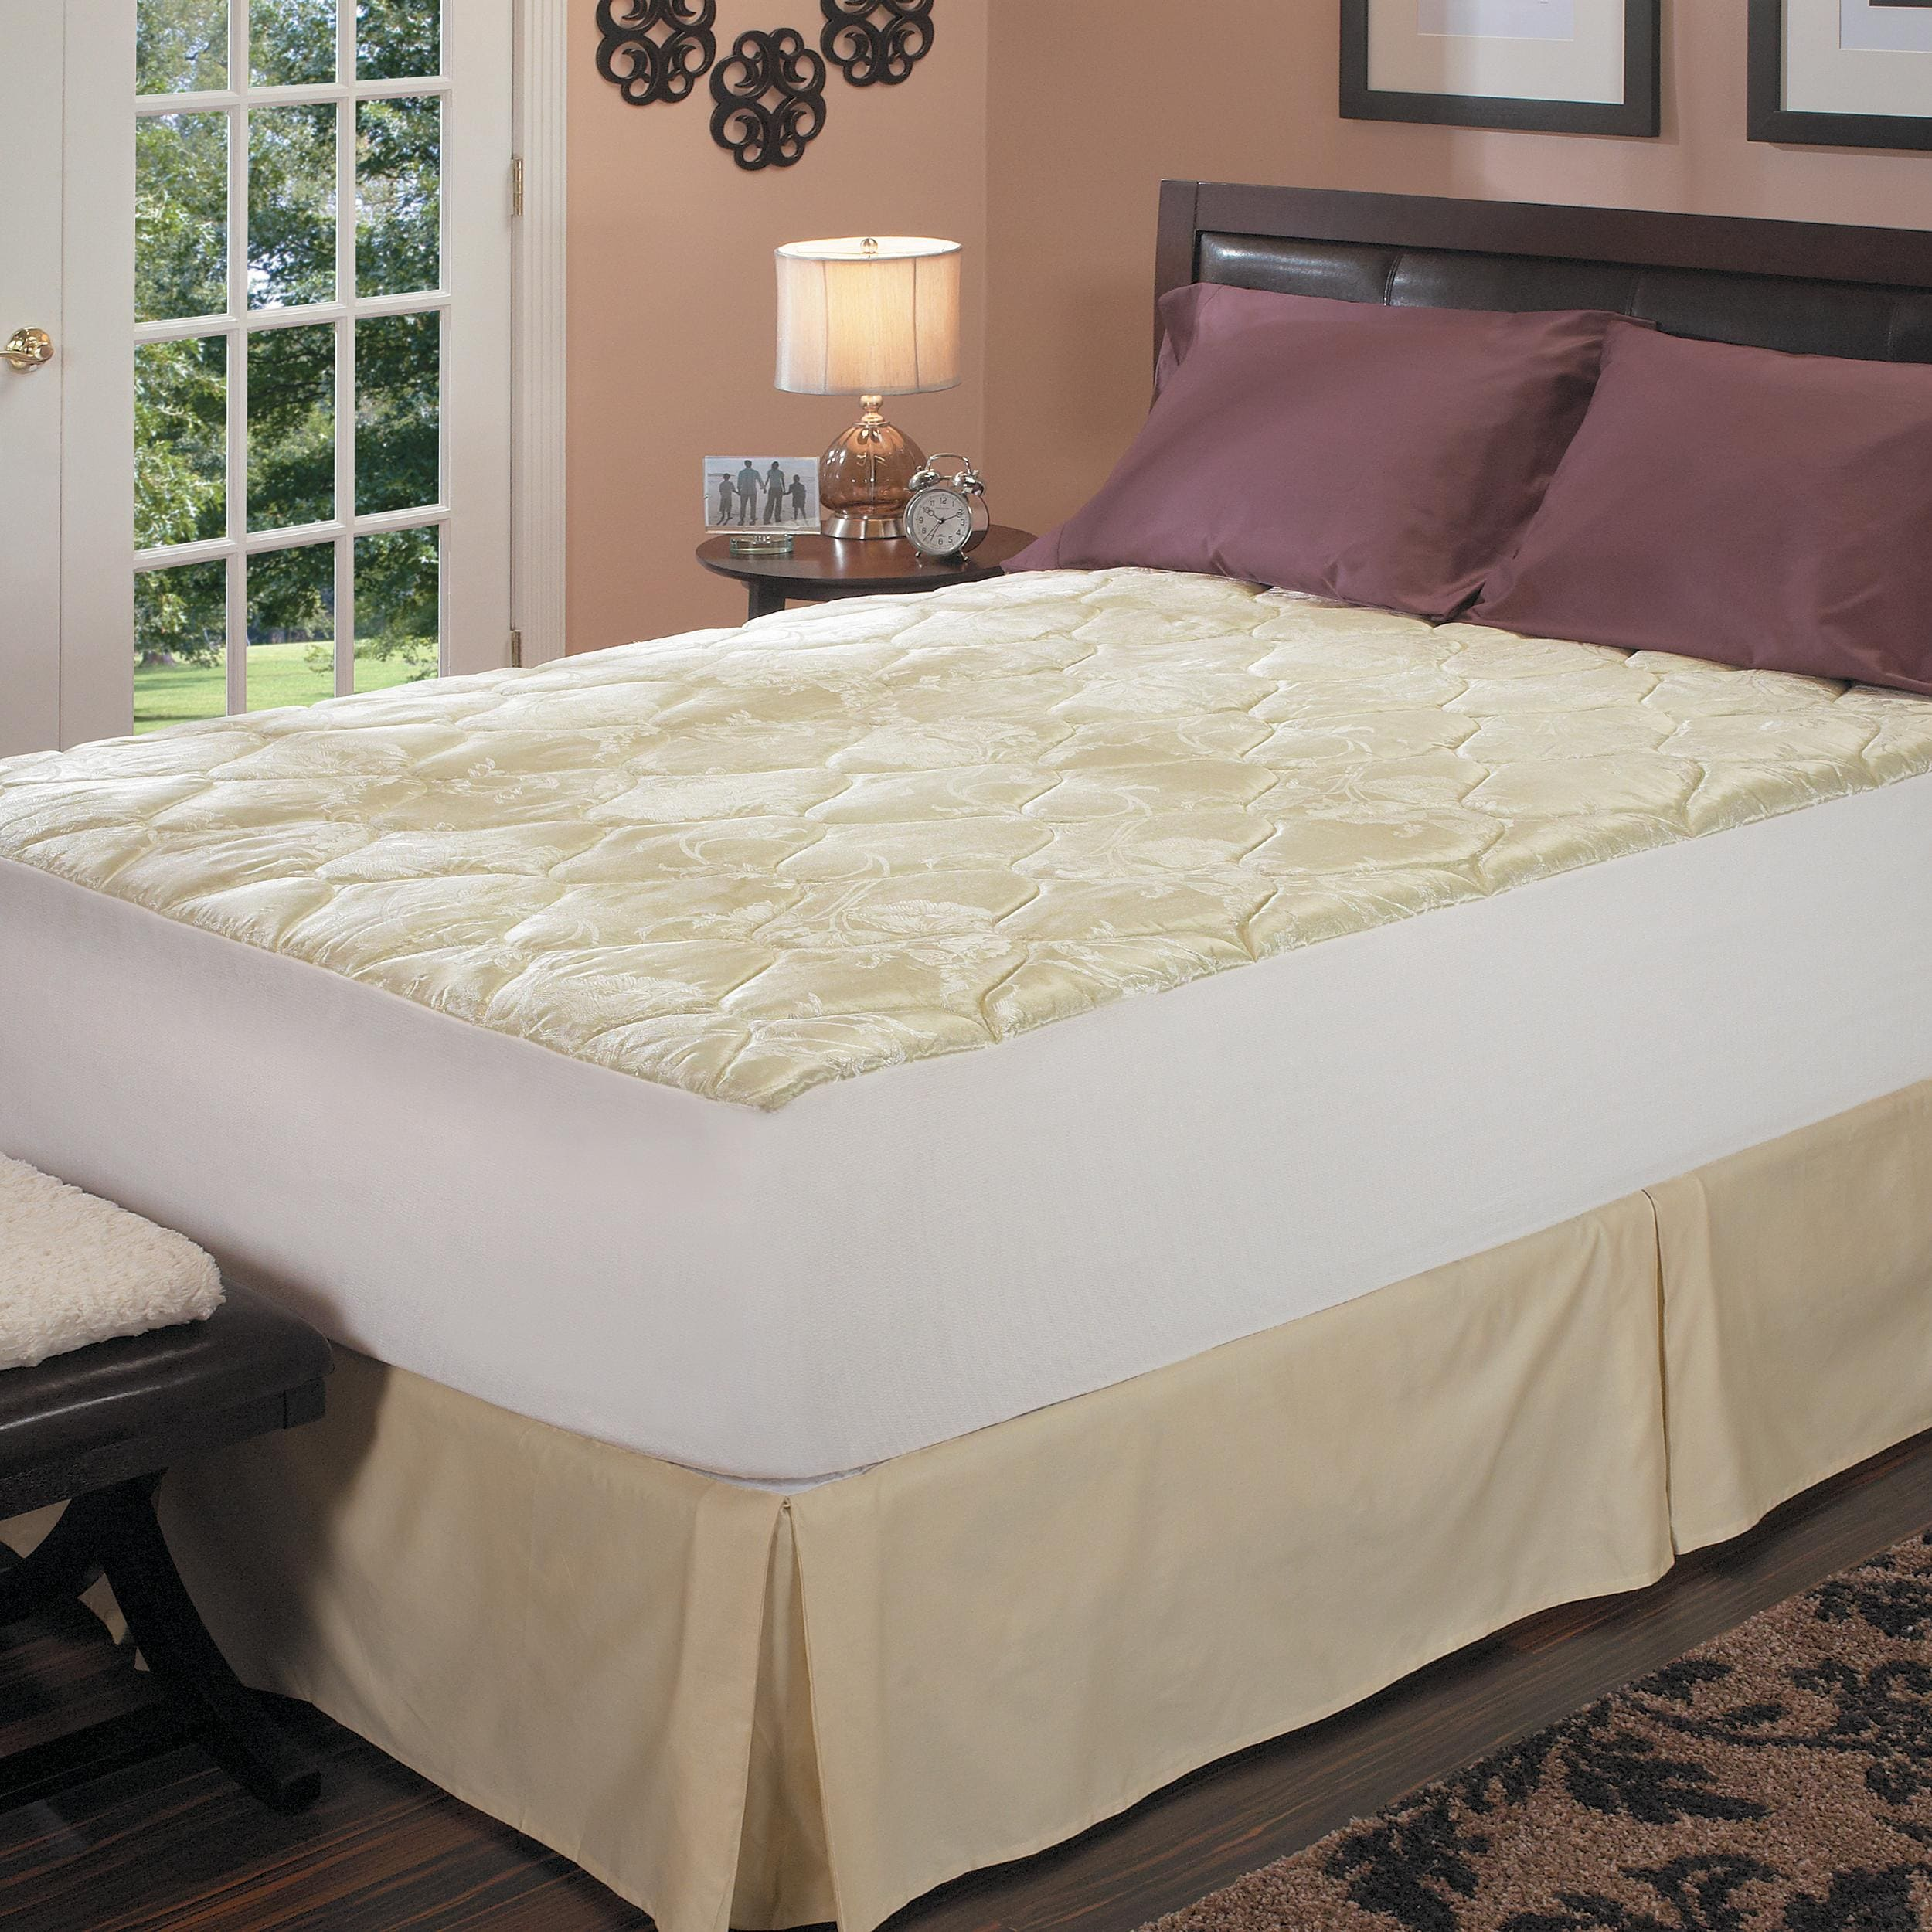 Compare Prices For Eclipse 11 Inch Ultra-Deluxe Memory Foam Mattress W/Faux Pillowtop Design TWIN